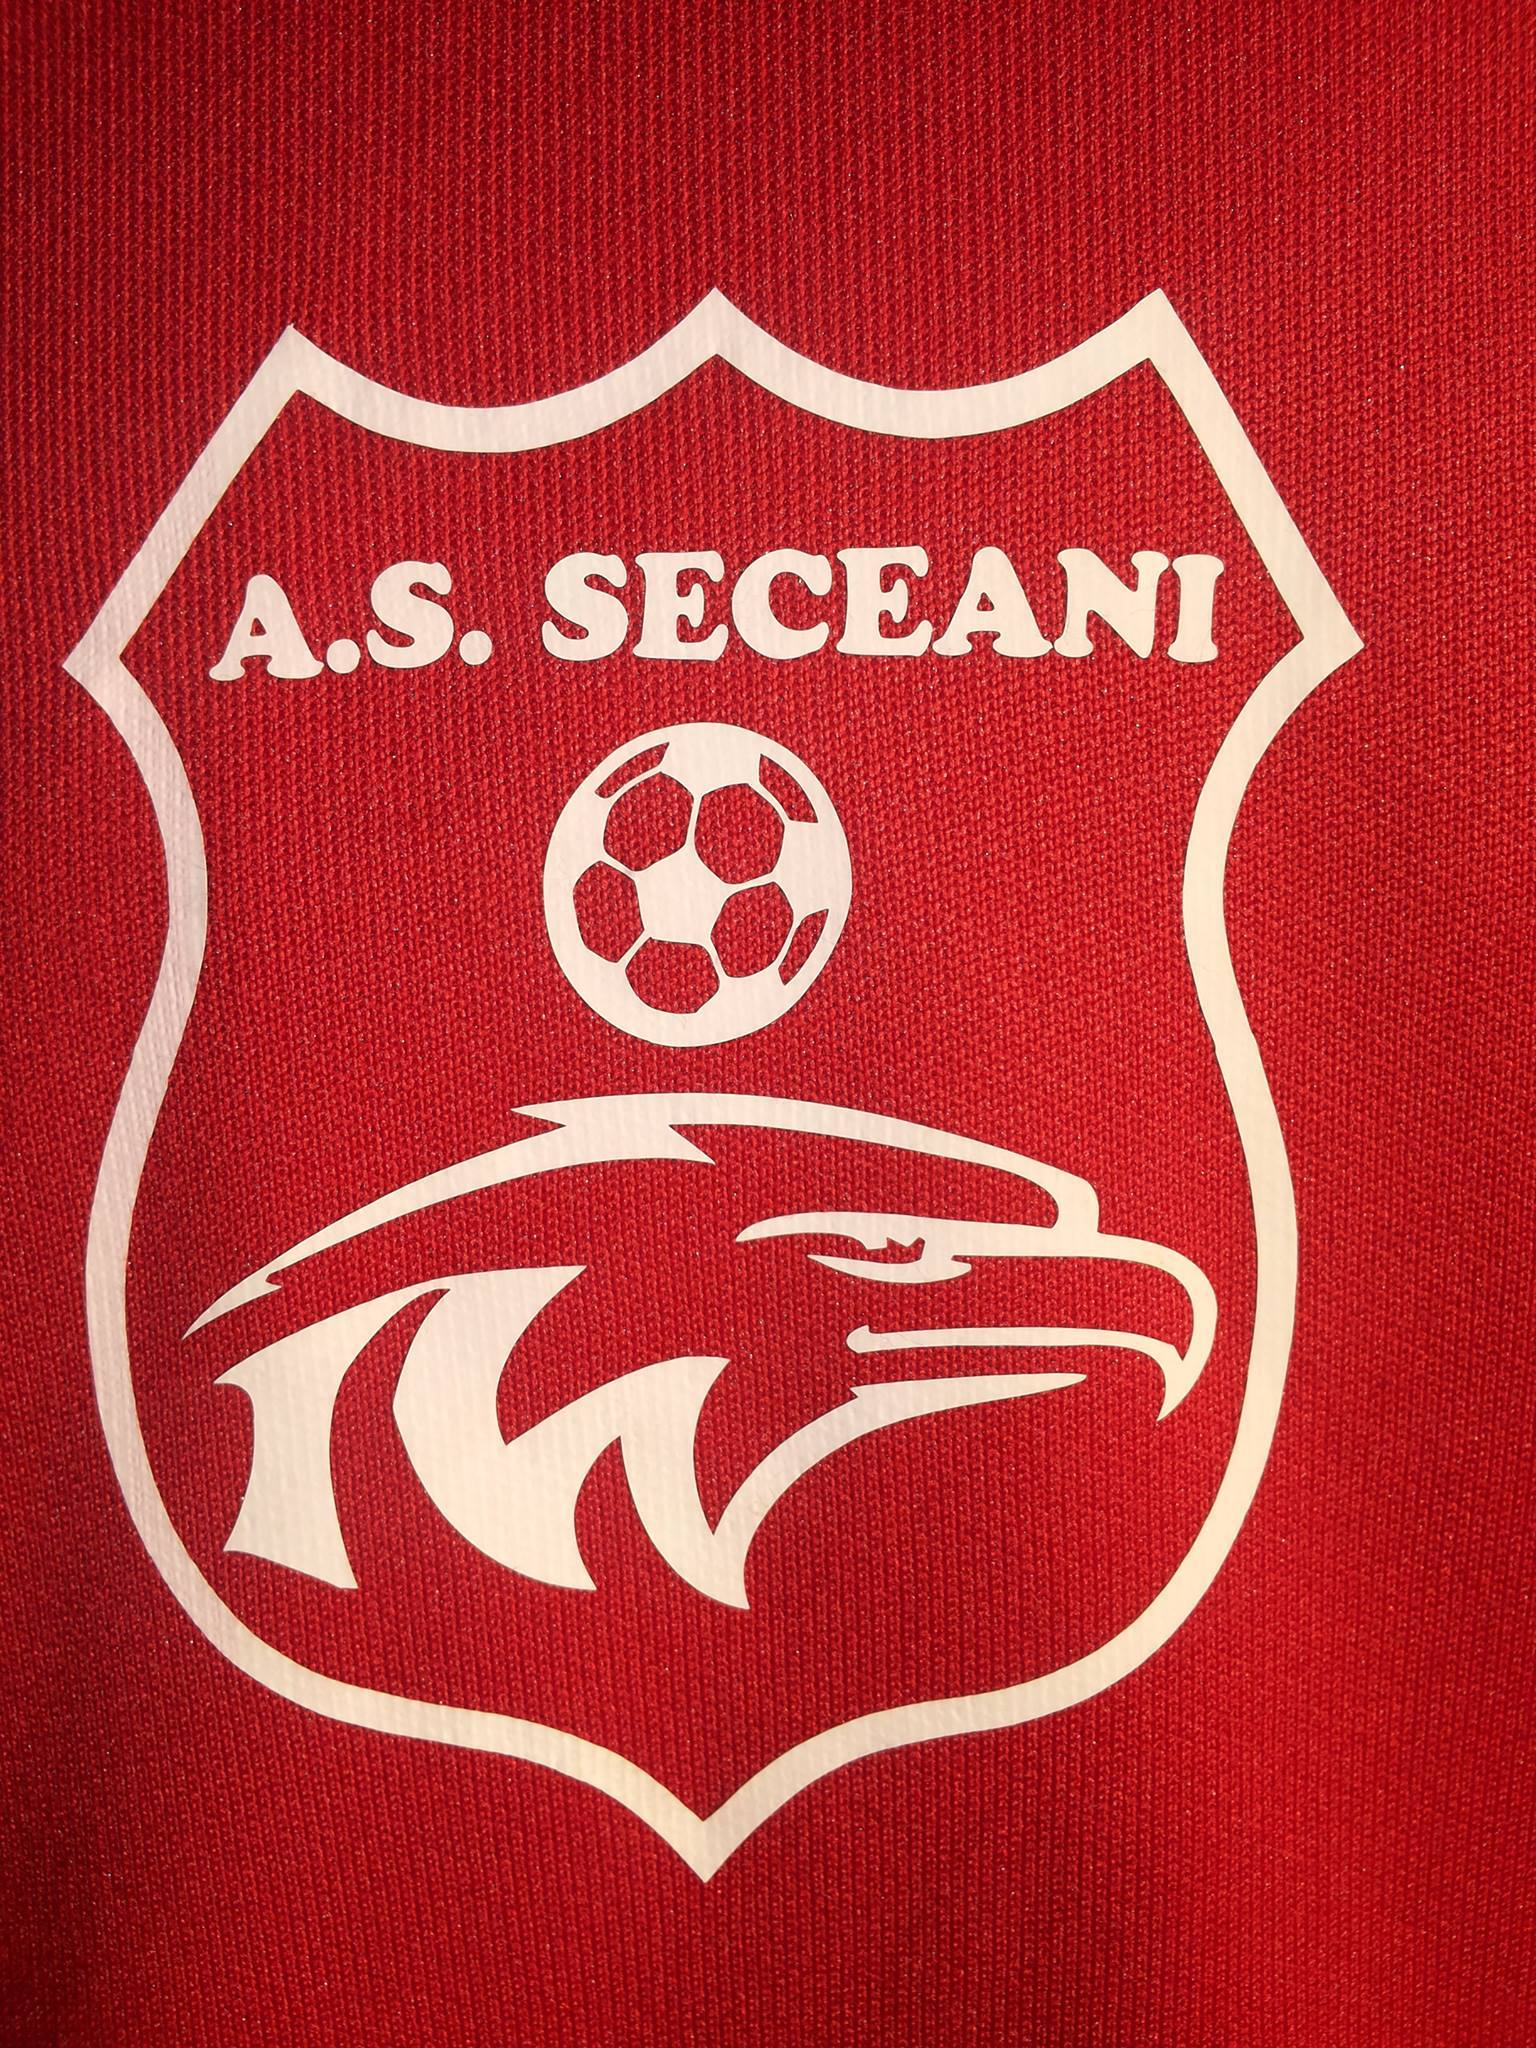 AS Seceani